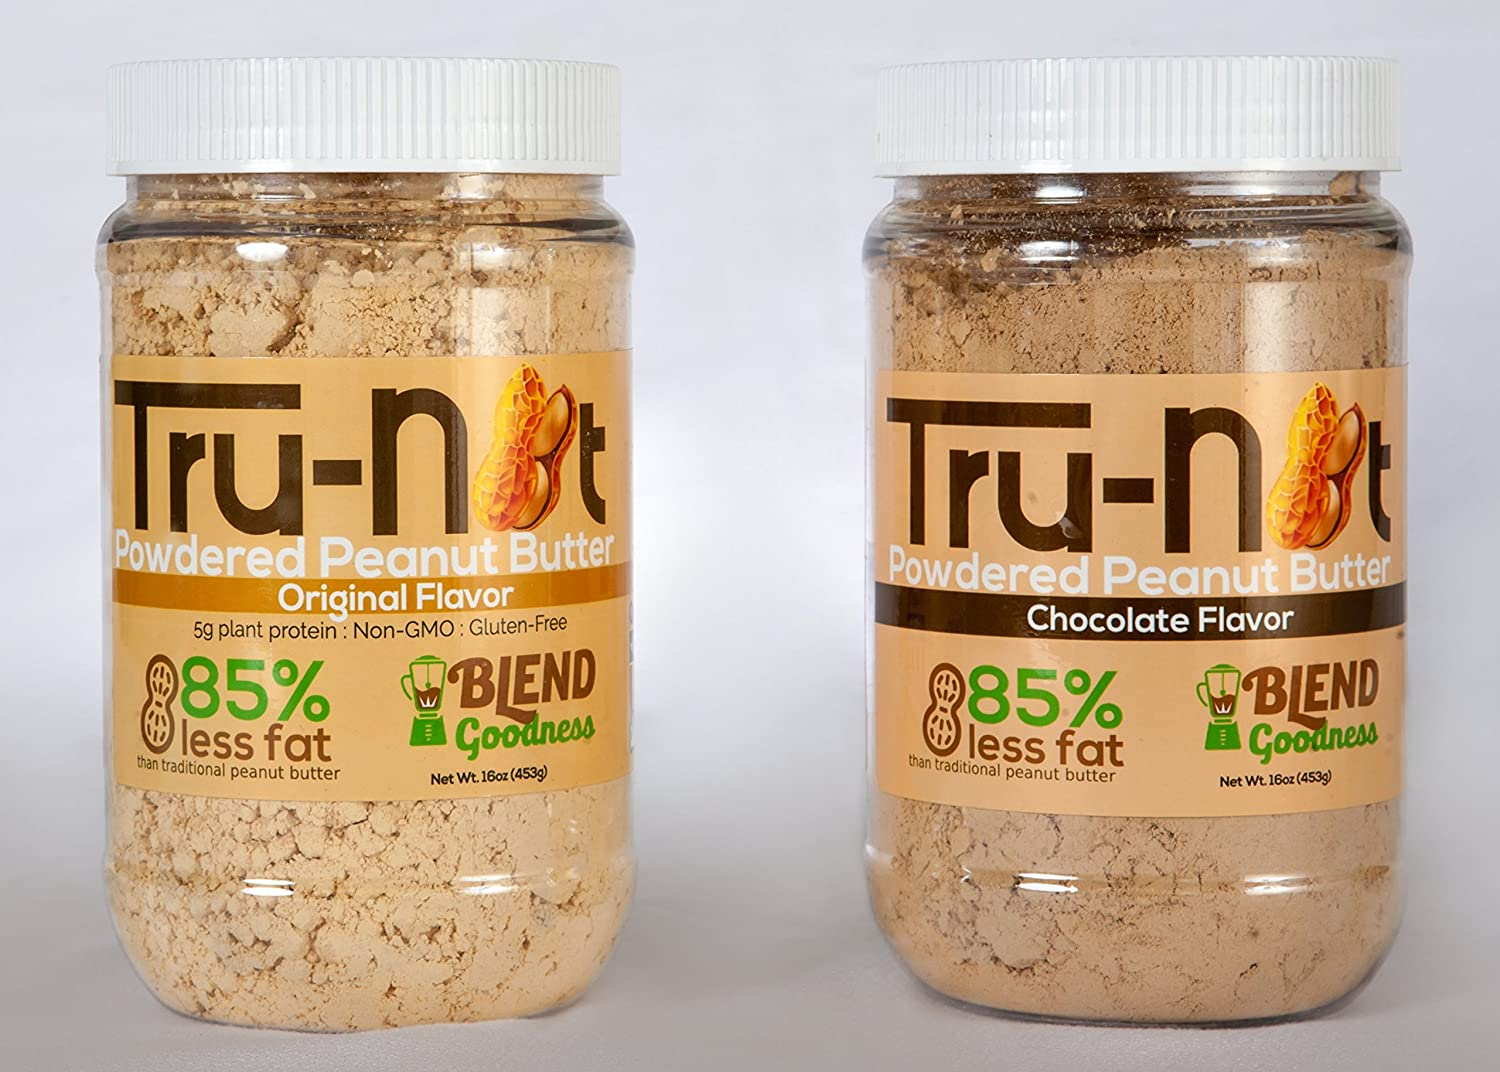 Amazon.com : Tru-Nut 16 Ounce Powdered Peanut Butter, Chocolate, 2 Count : Grocery & Gourmet Food